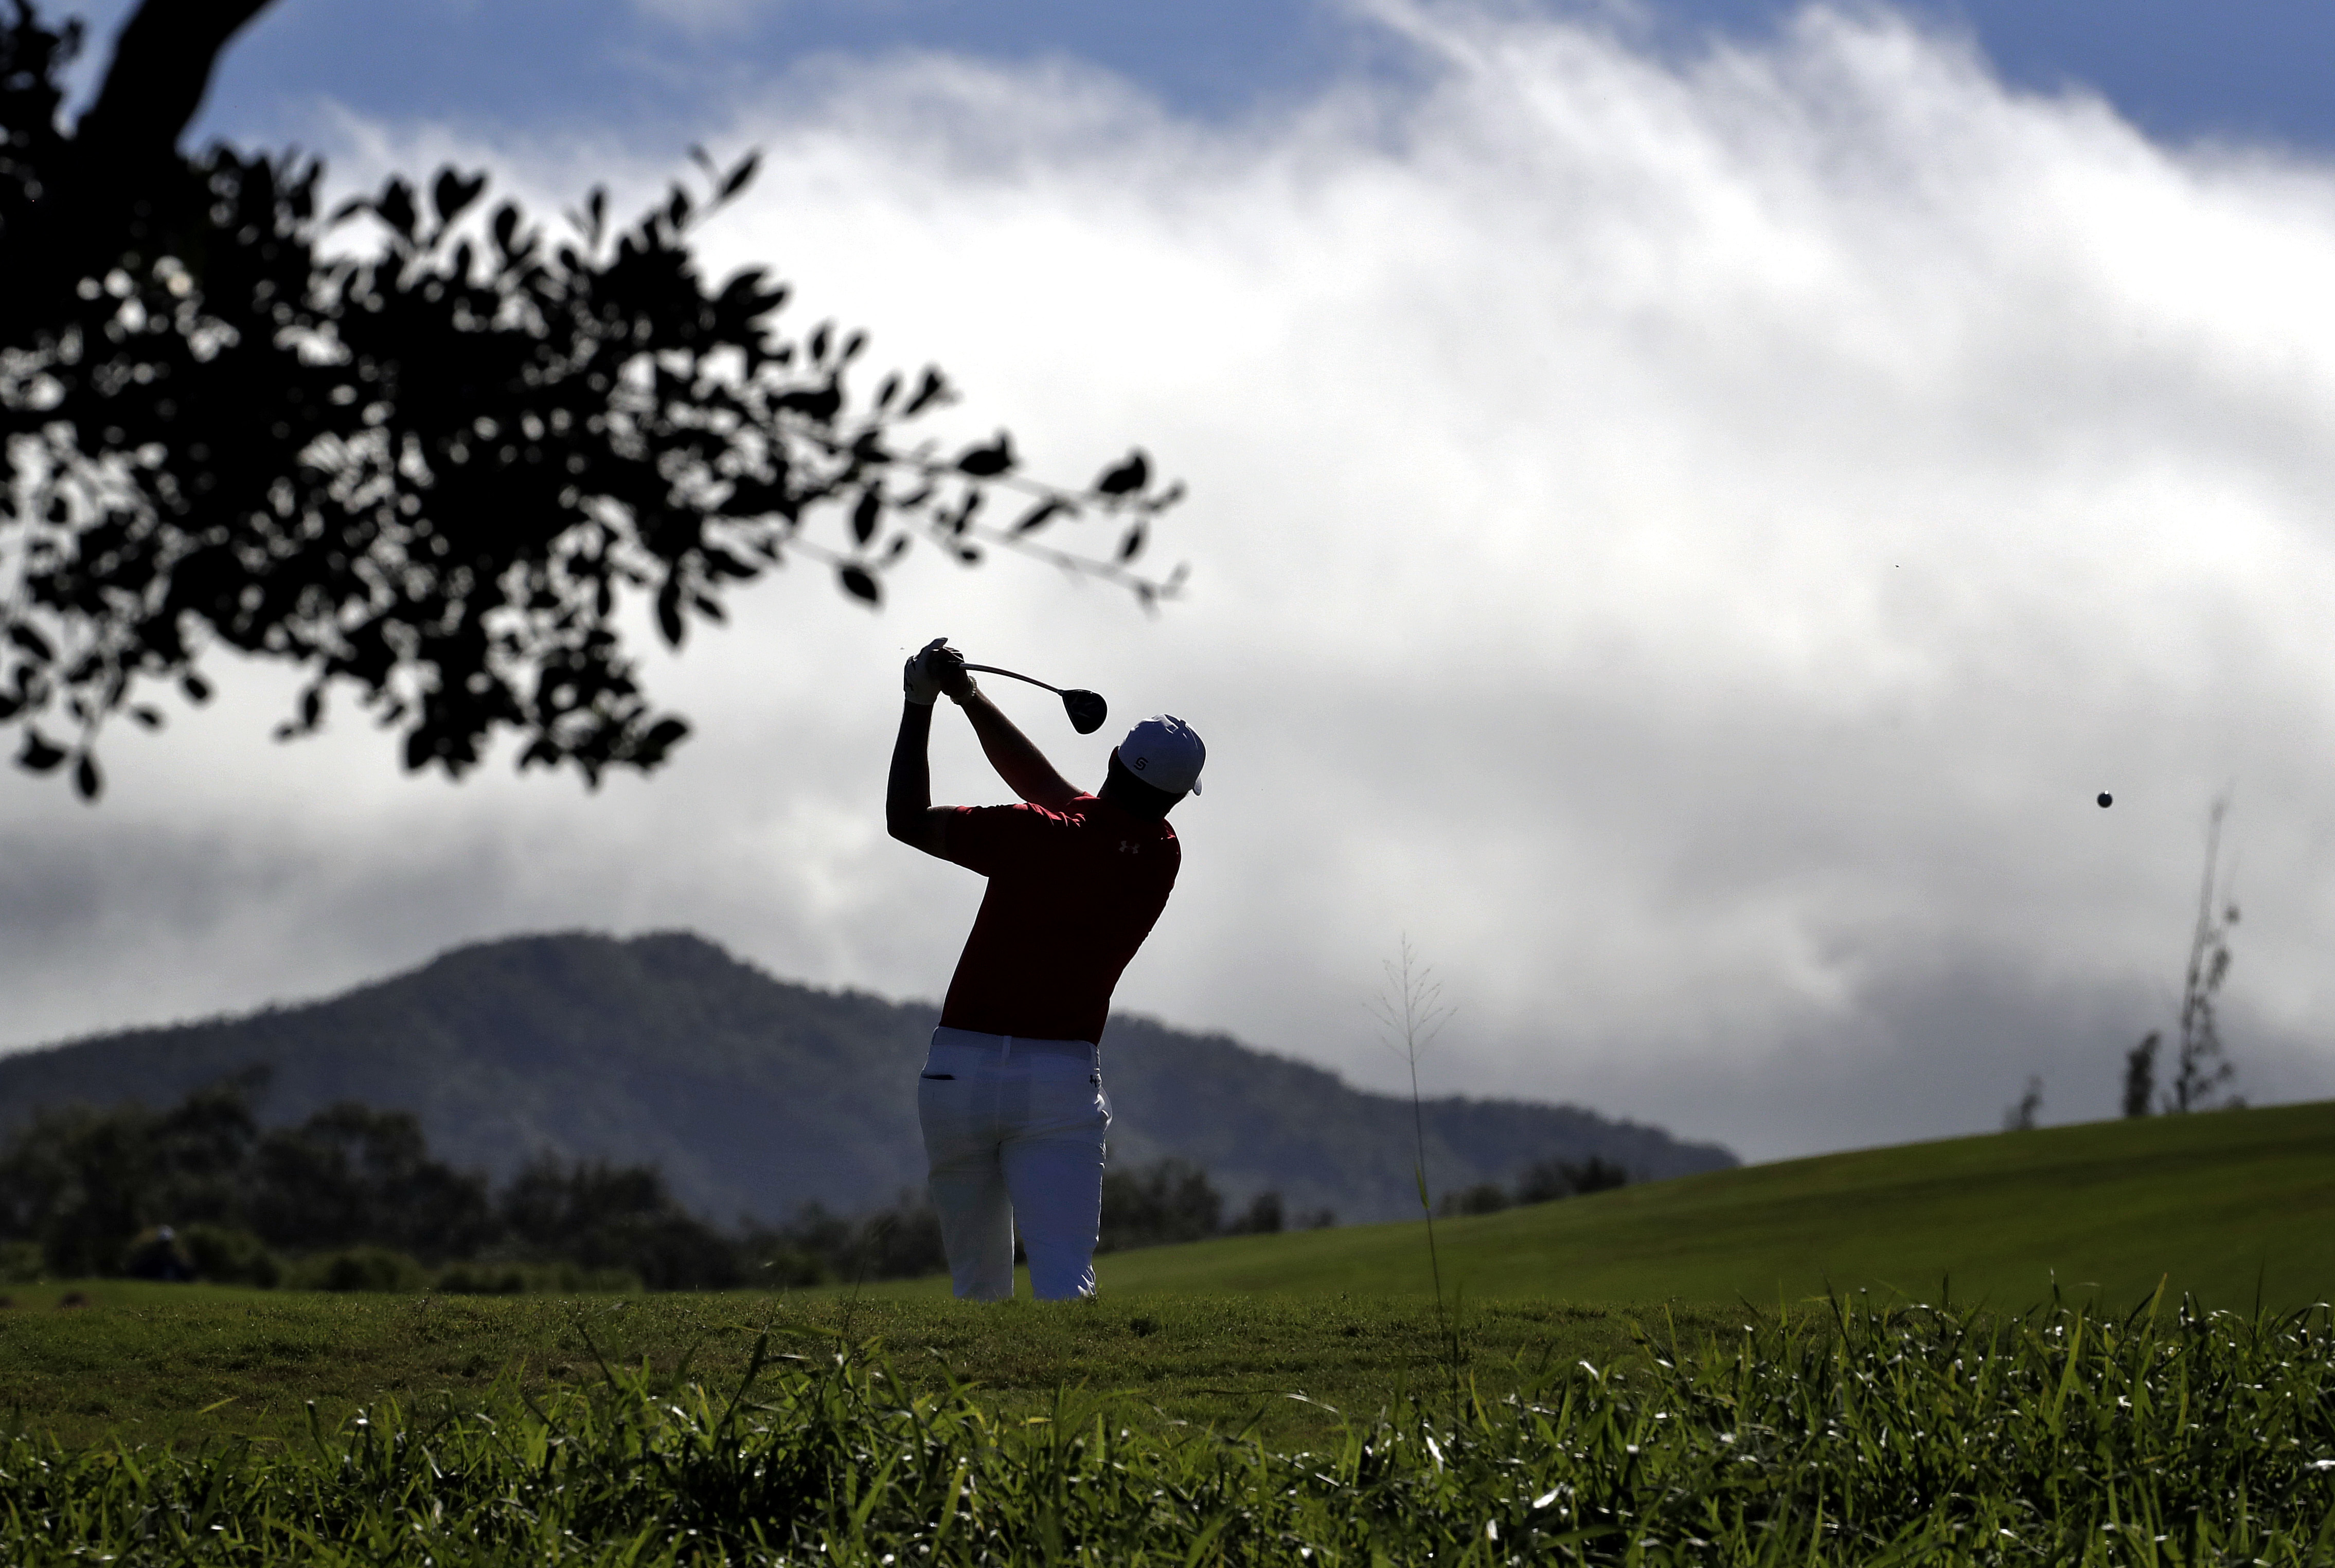 Jordan Spieth hits from the fourth tee during the second round of the Tournament of Champions golf event, Friday, Jan. 6, 2017, at Kapalua Plantation Course in Kapalua, Hawaii. (AP Photo/Matt